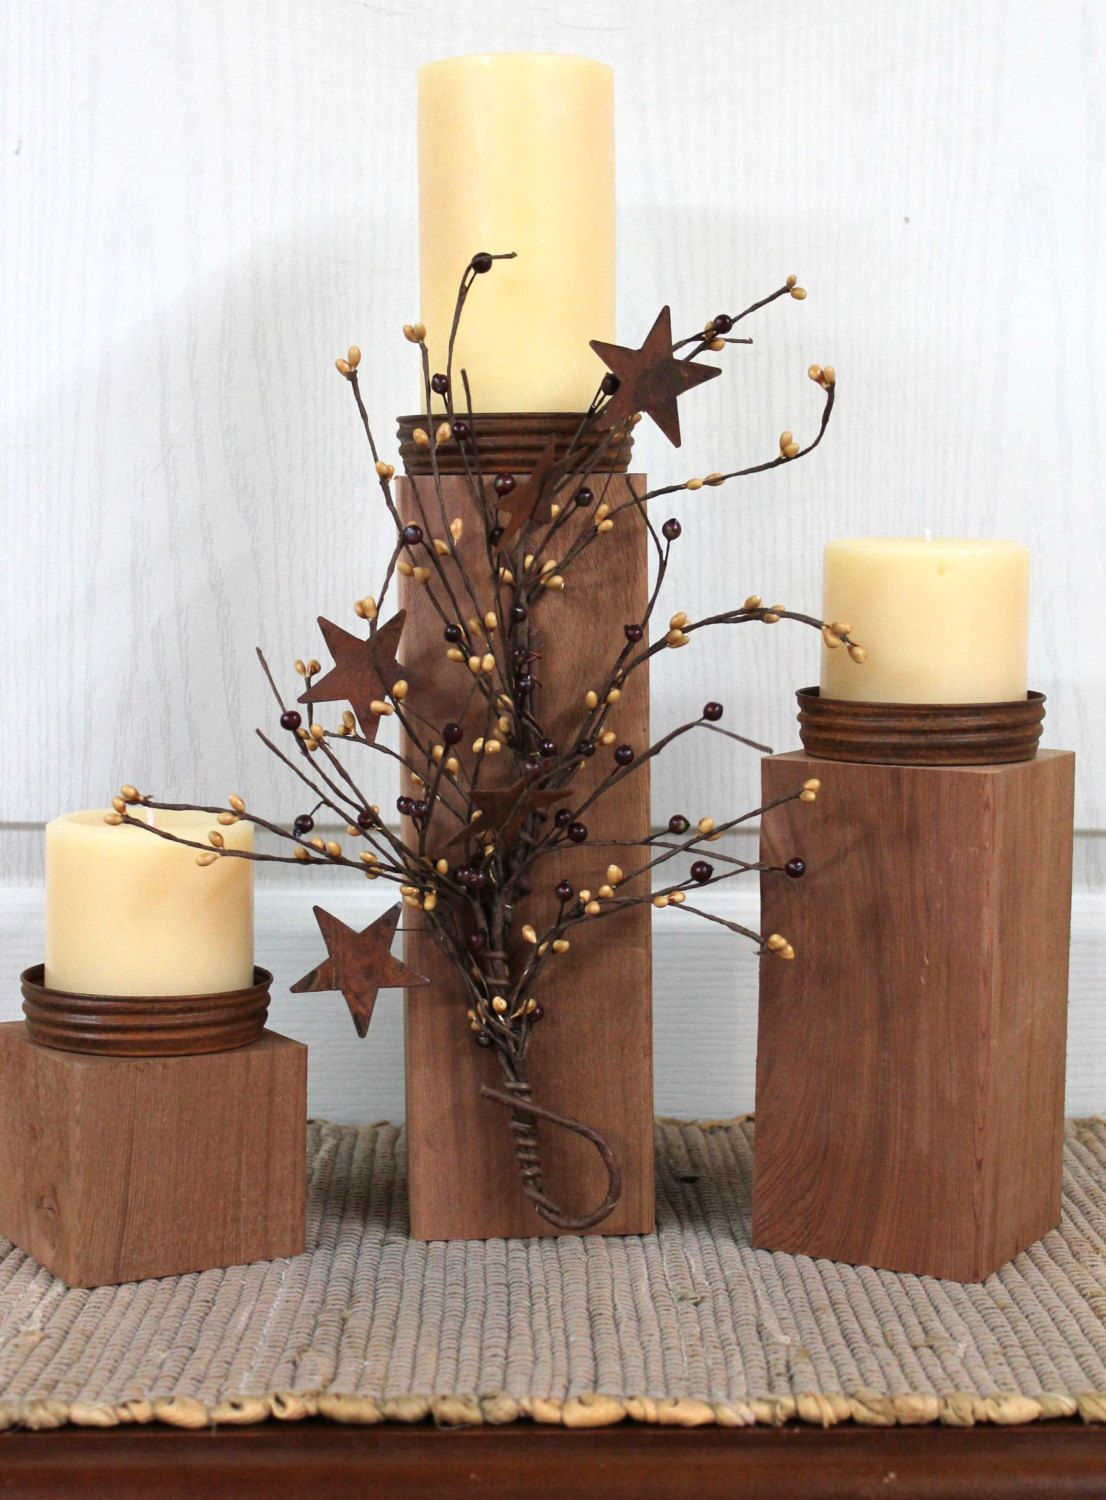 Lovely candle stands using canning lids, via Etsy.